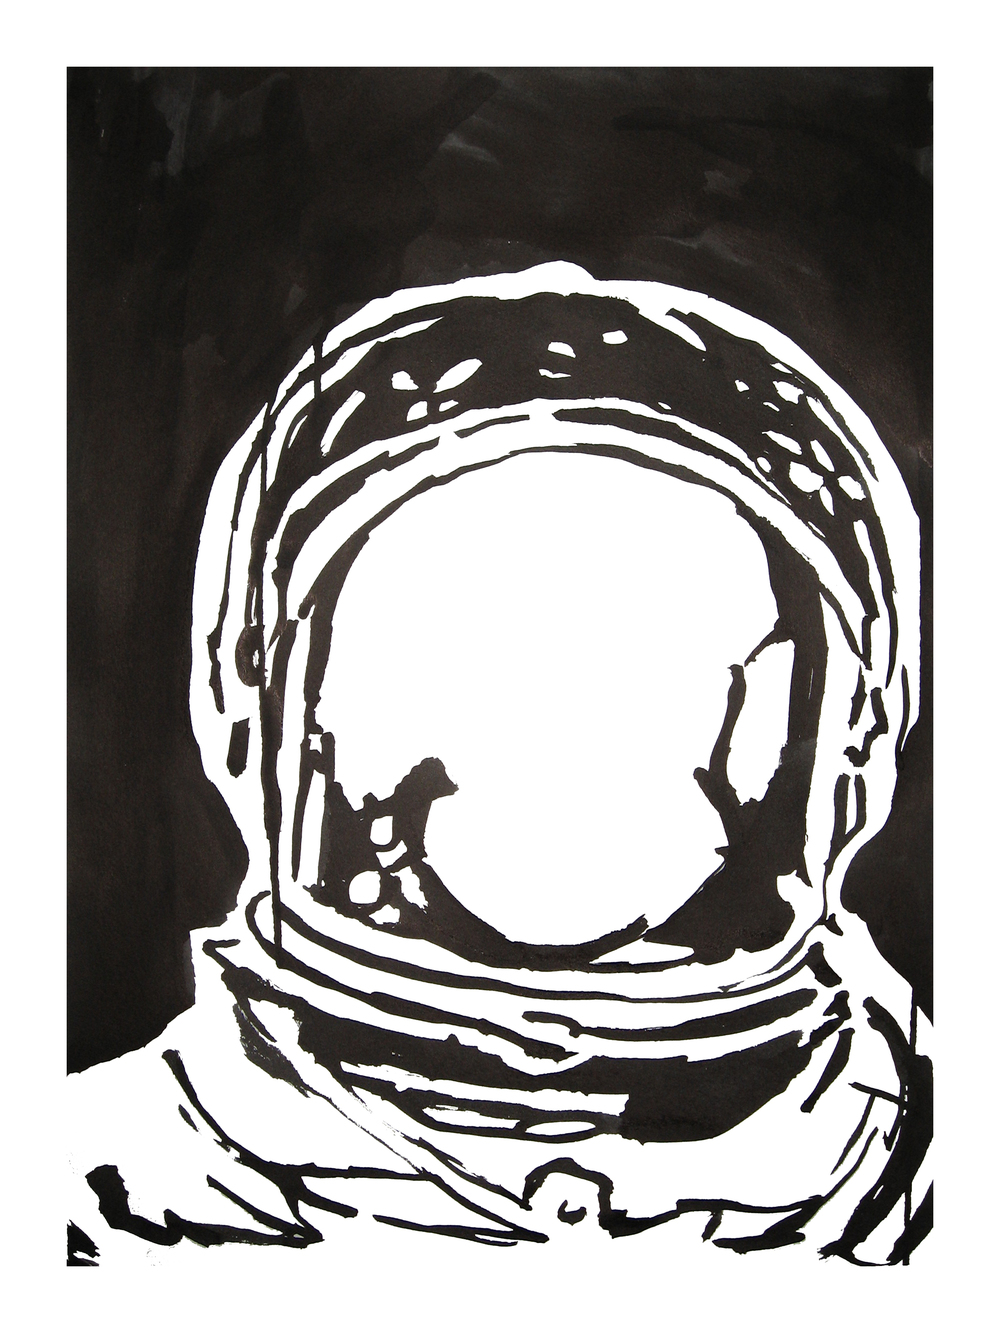 untitled. (spaceman blot 11)